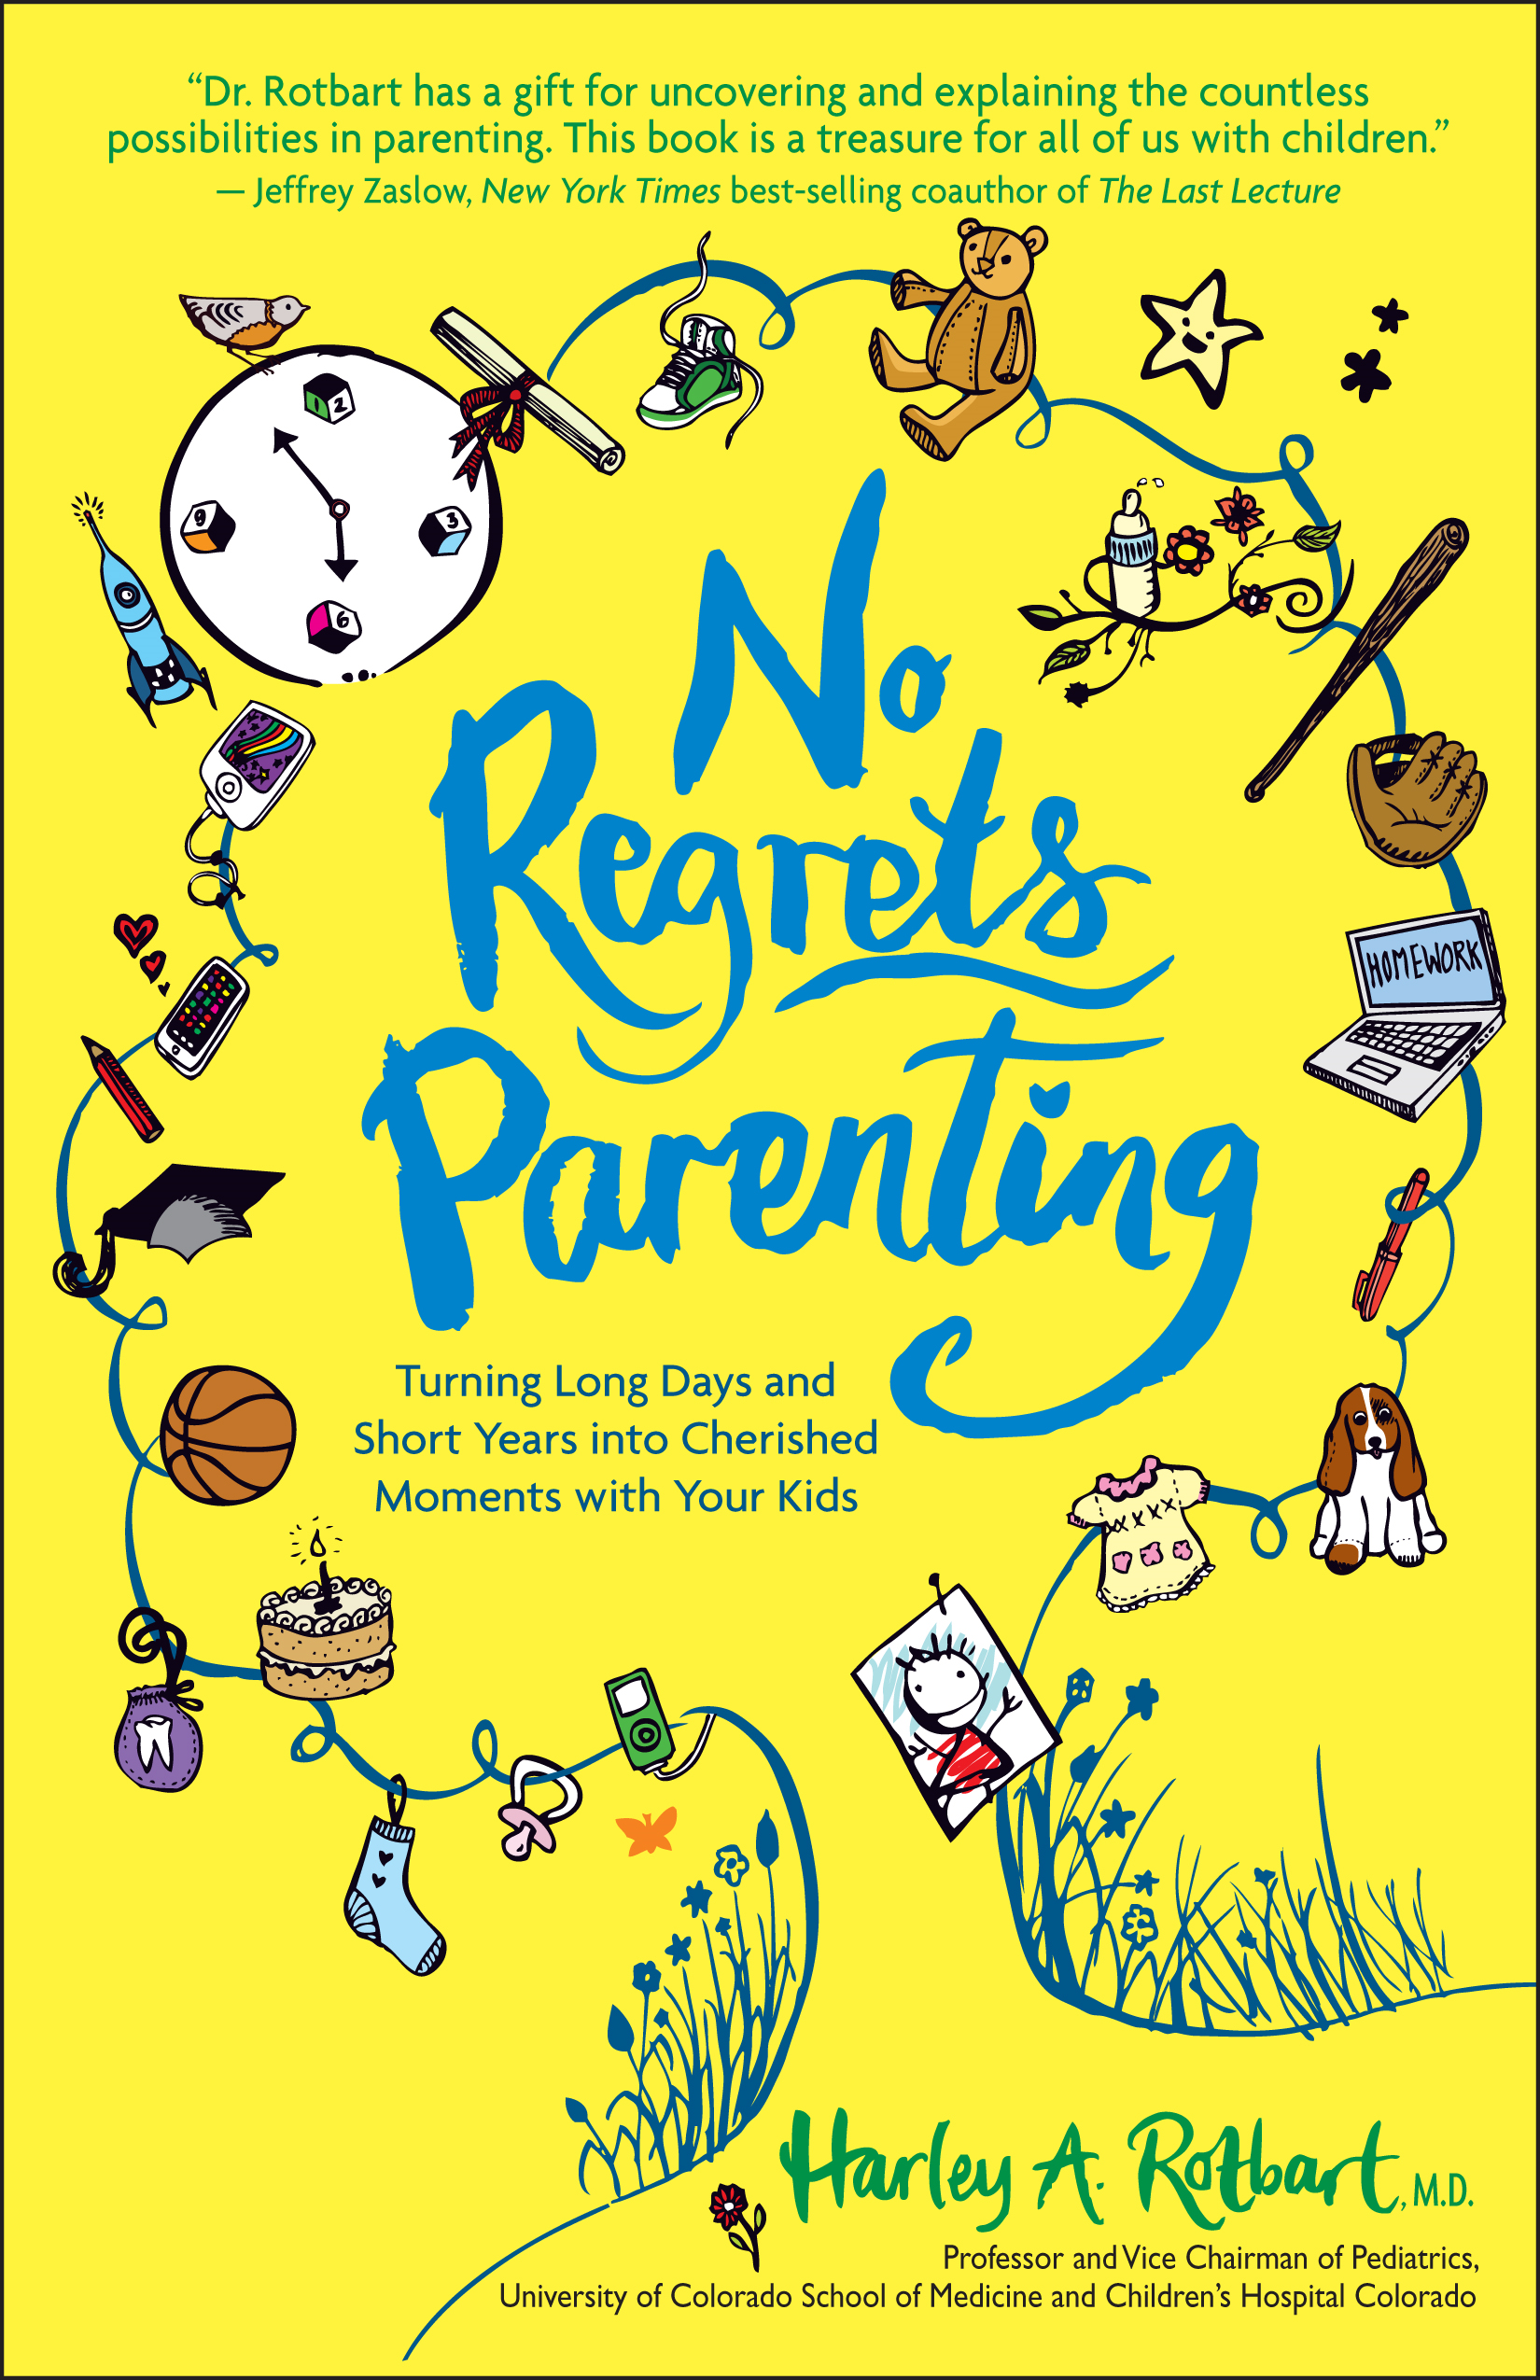 No Regrets Parenting: Turning Long Days and Short Years into Cherished Moments with Your Kids By: Harley A. Rotbart M.D.